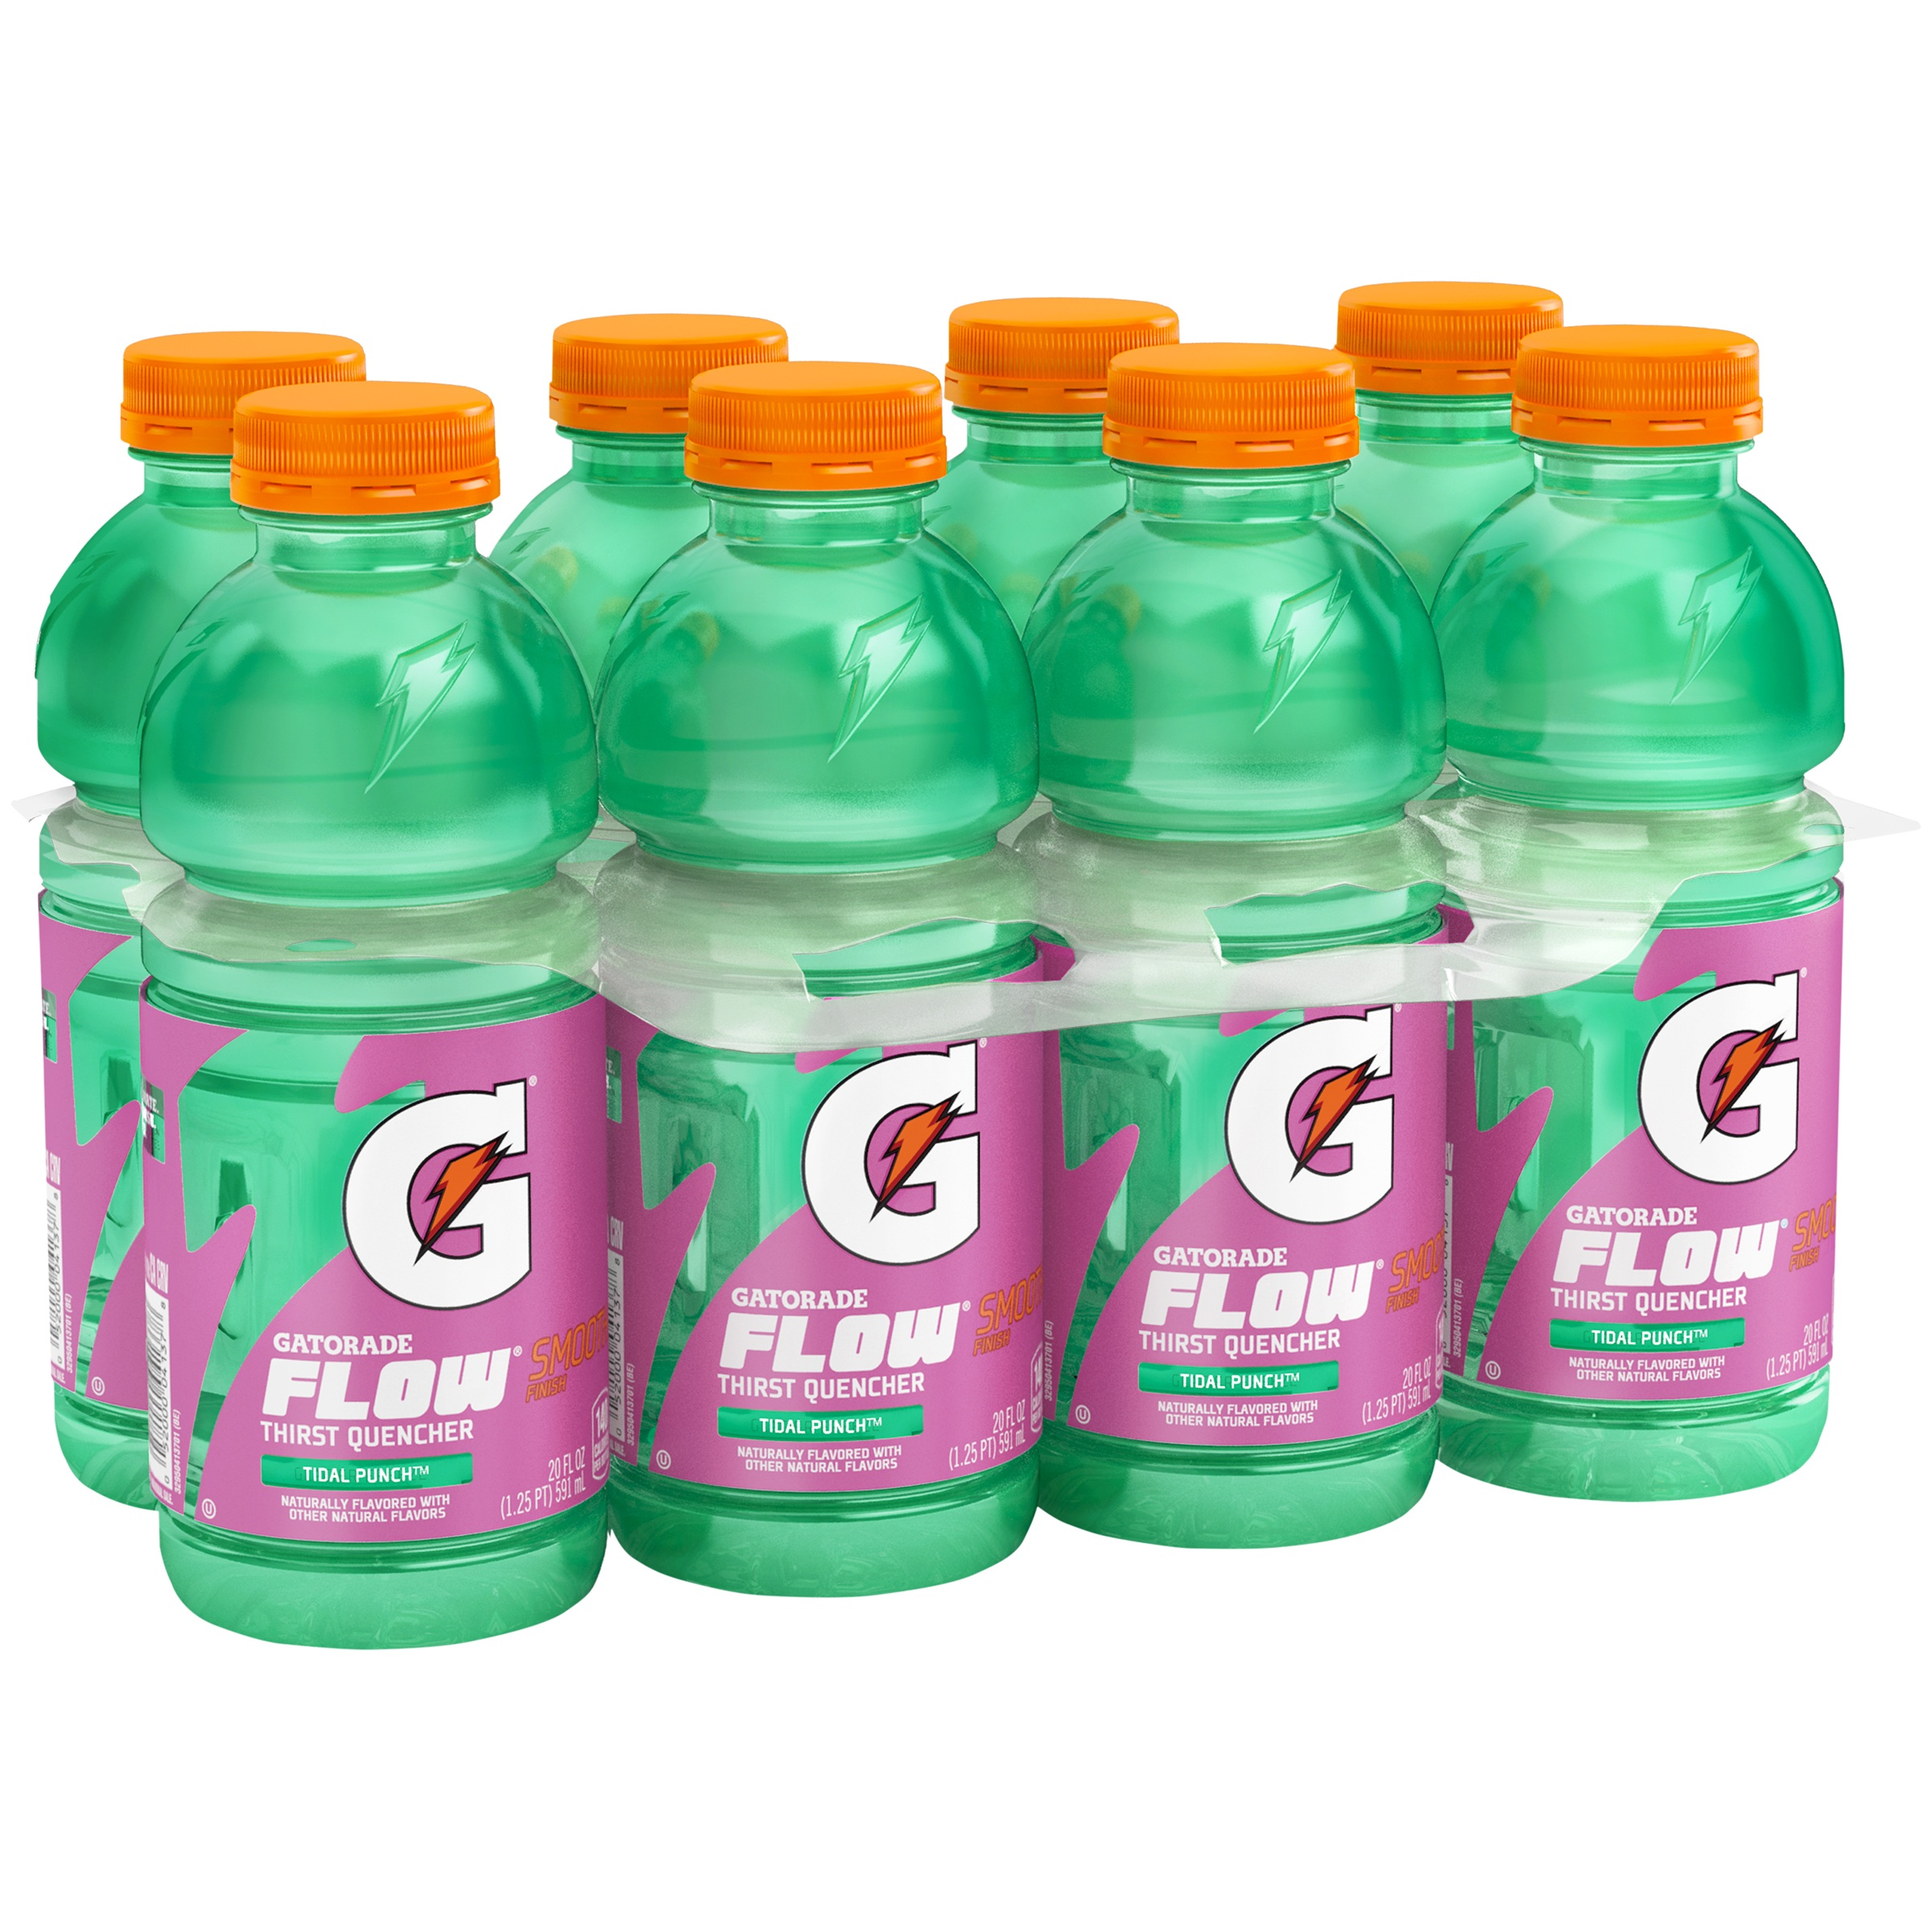 Gatorade Flow Tidal Punch Thirst Quencher, 20 Fl Oz, 8 Count